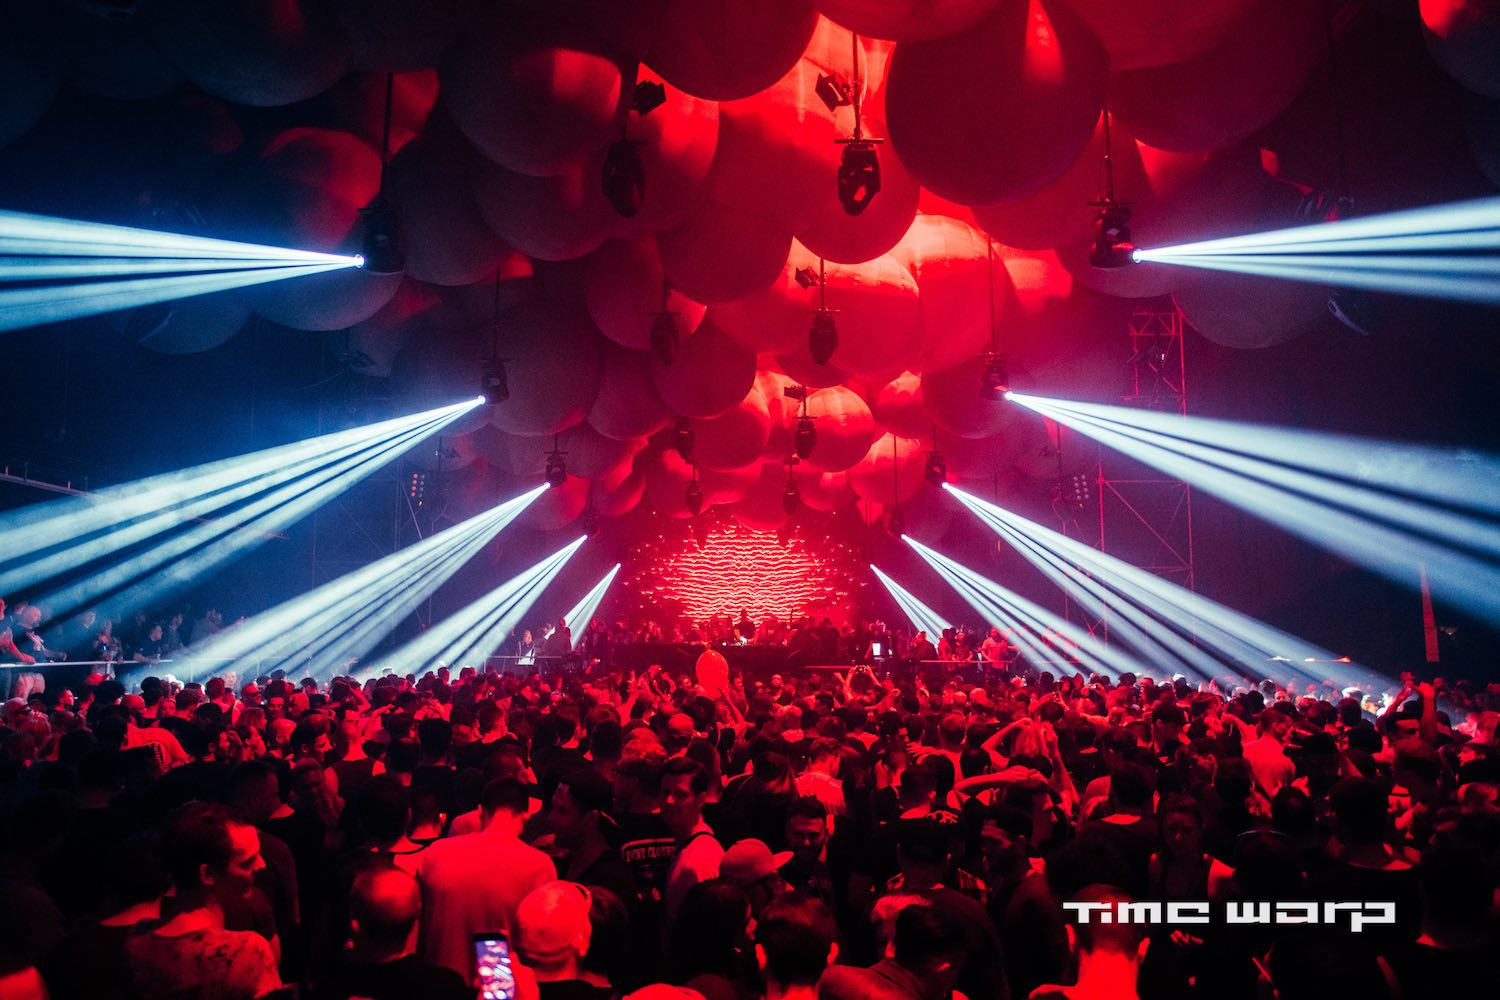 Time Warp Festival - Best Europe Music Festivals 2020